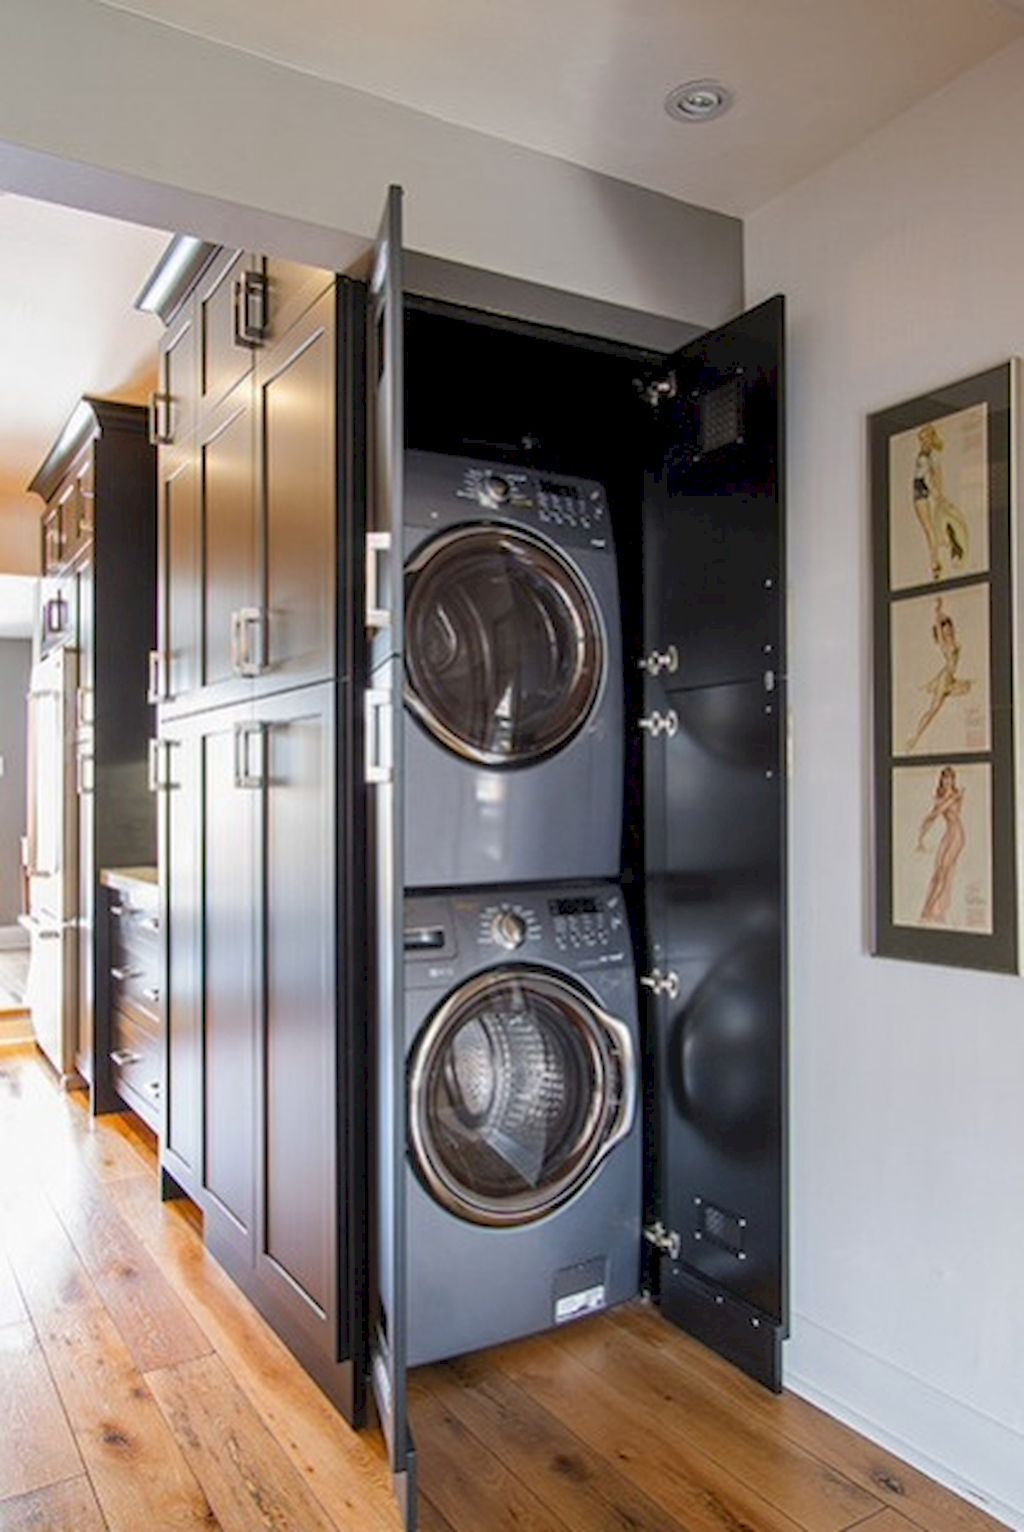 60 Amazing Tiny Apartment Laundry Room Decor Ideas ... on Small Space Small Bathroom Ideas With Washing Machine id=69014